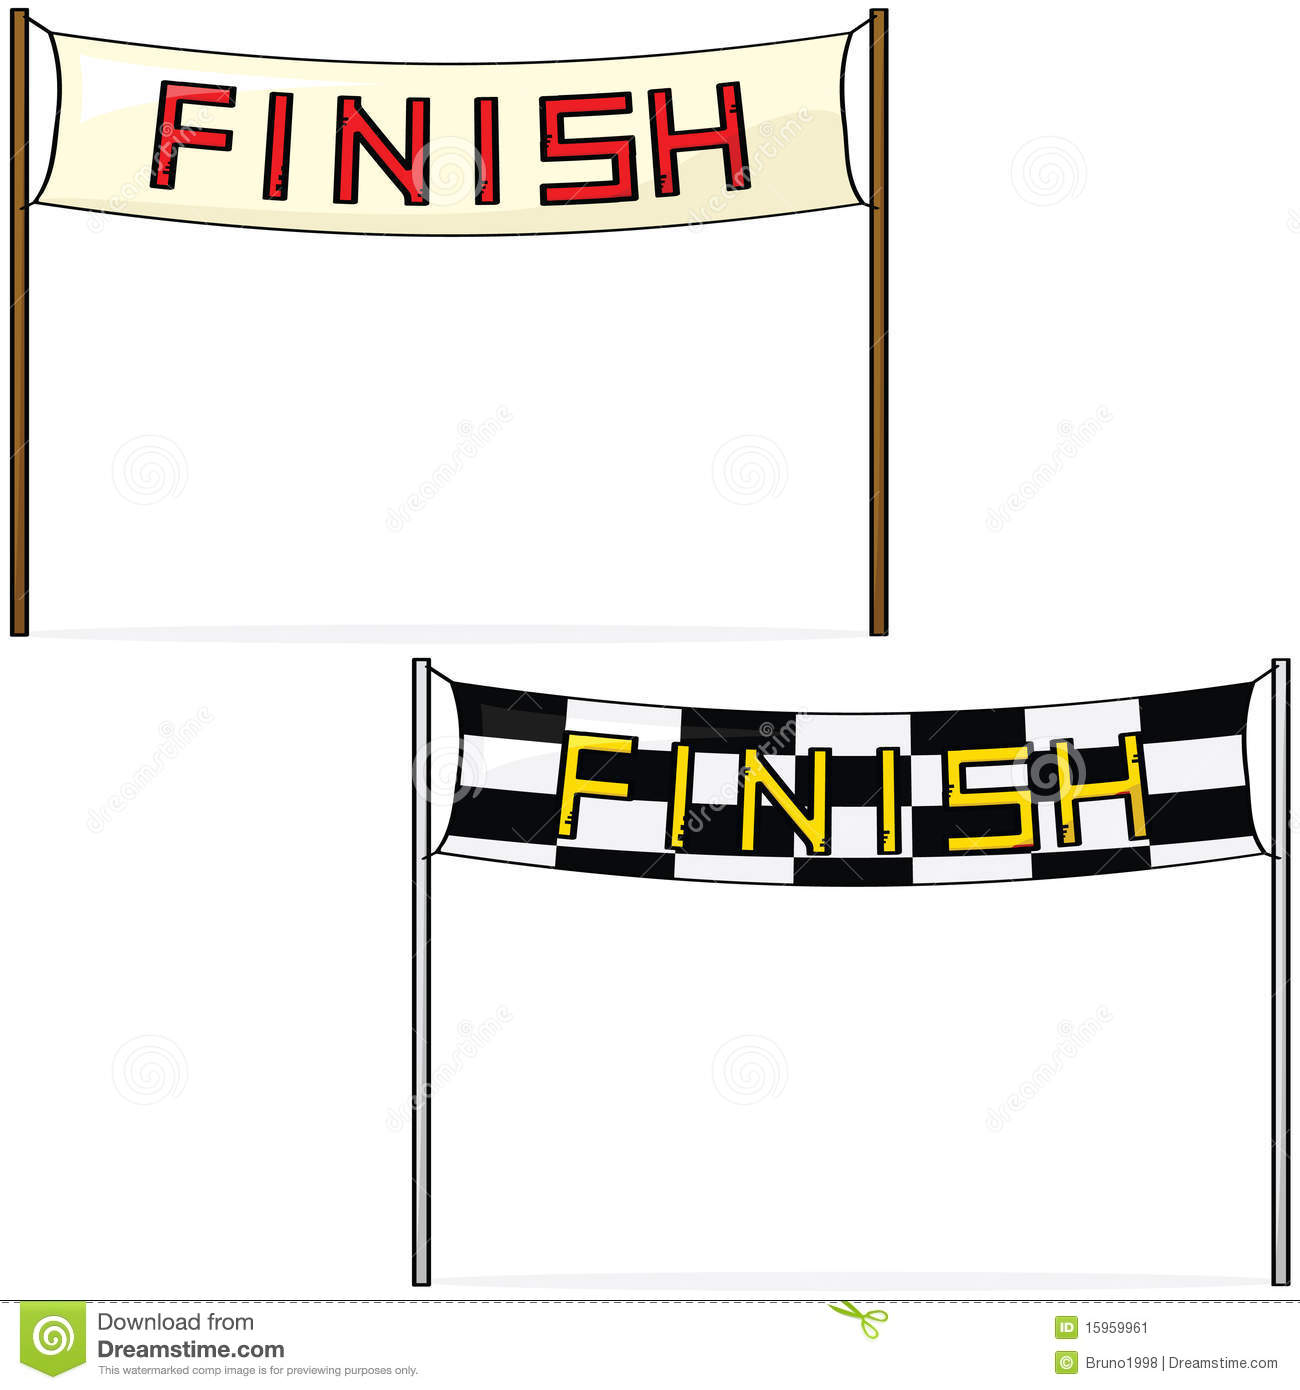 Finish line stock vector. Image of competition, drawing ...